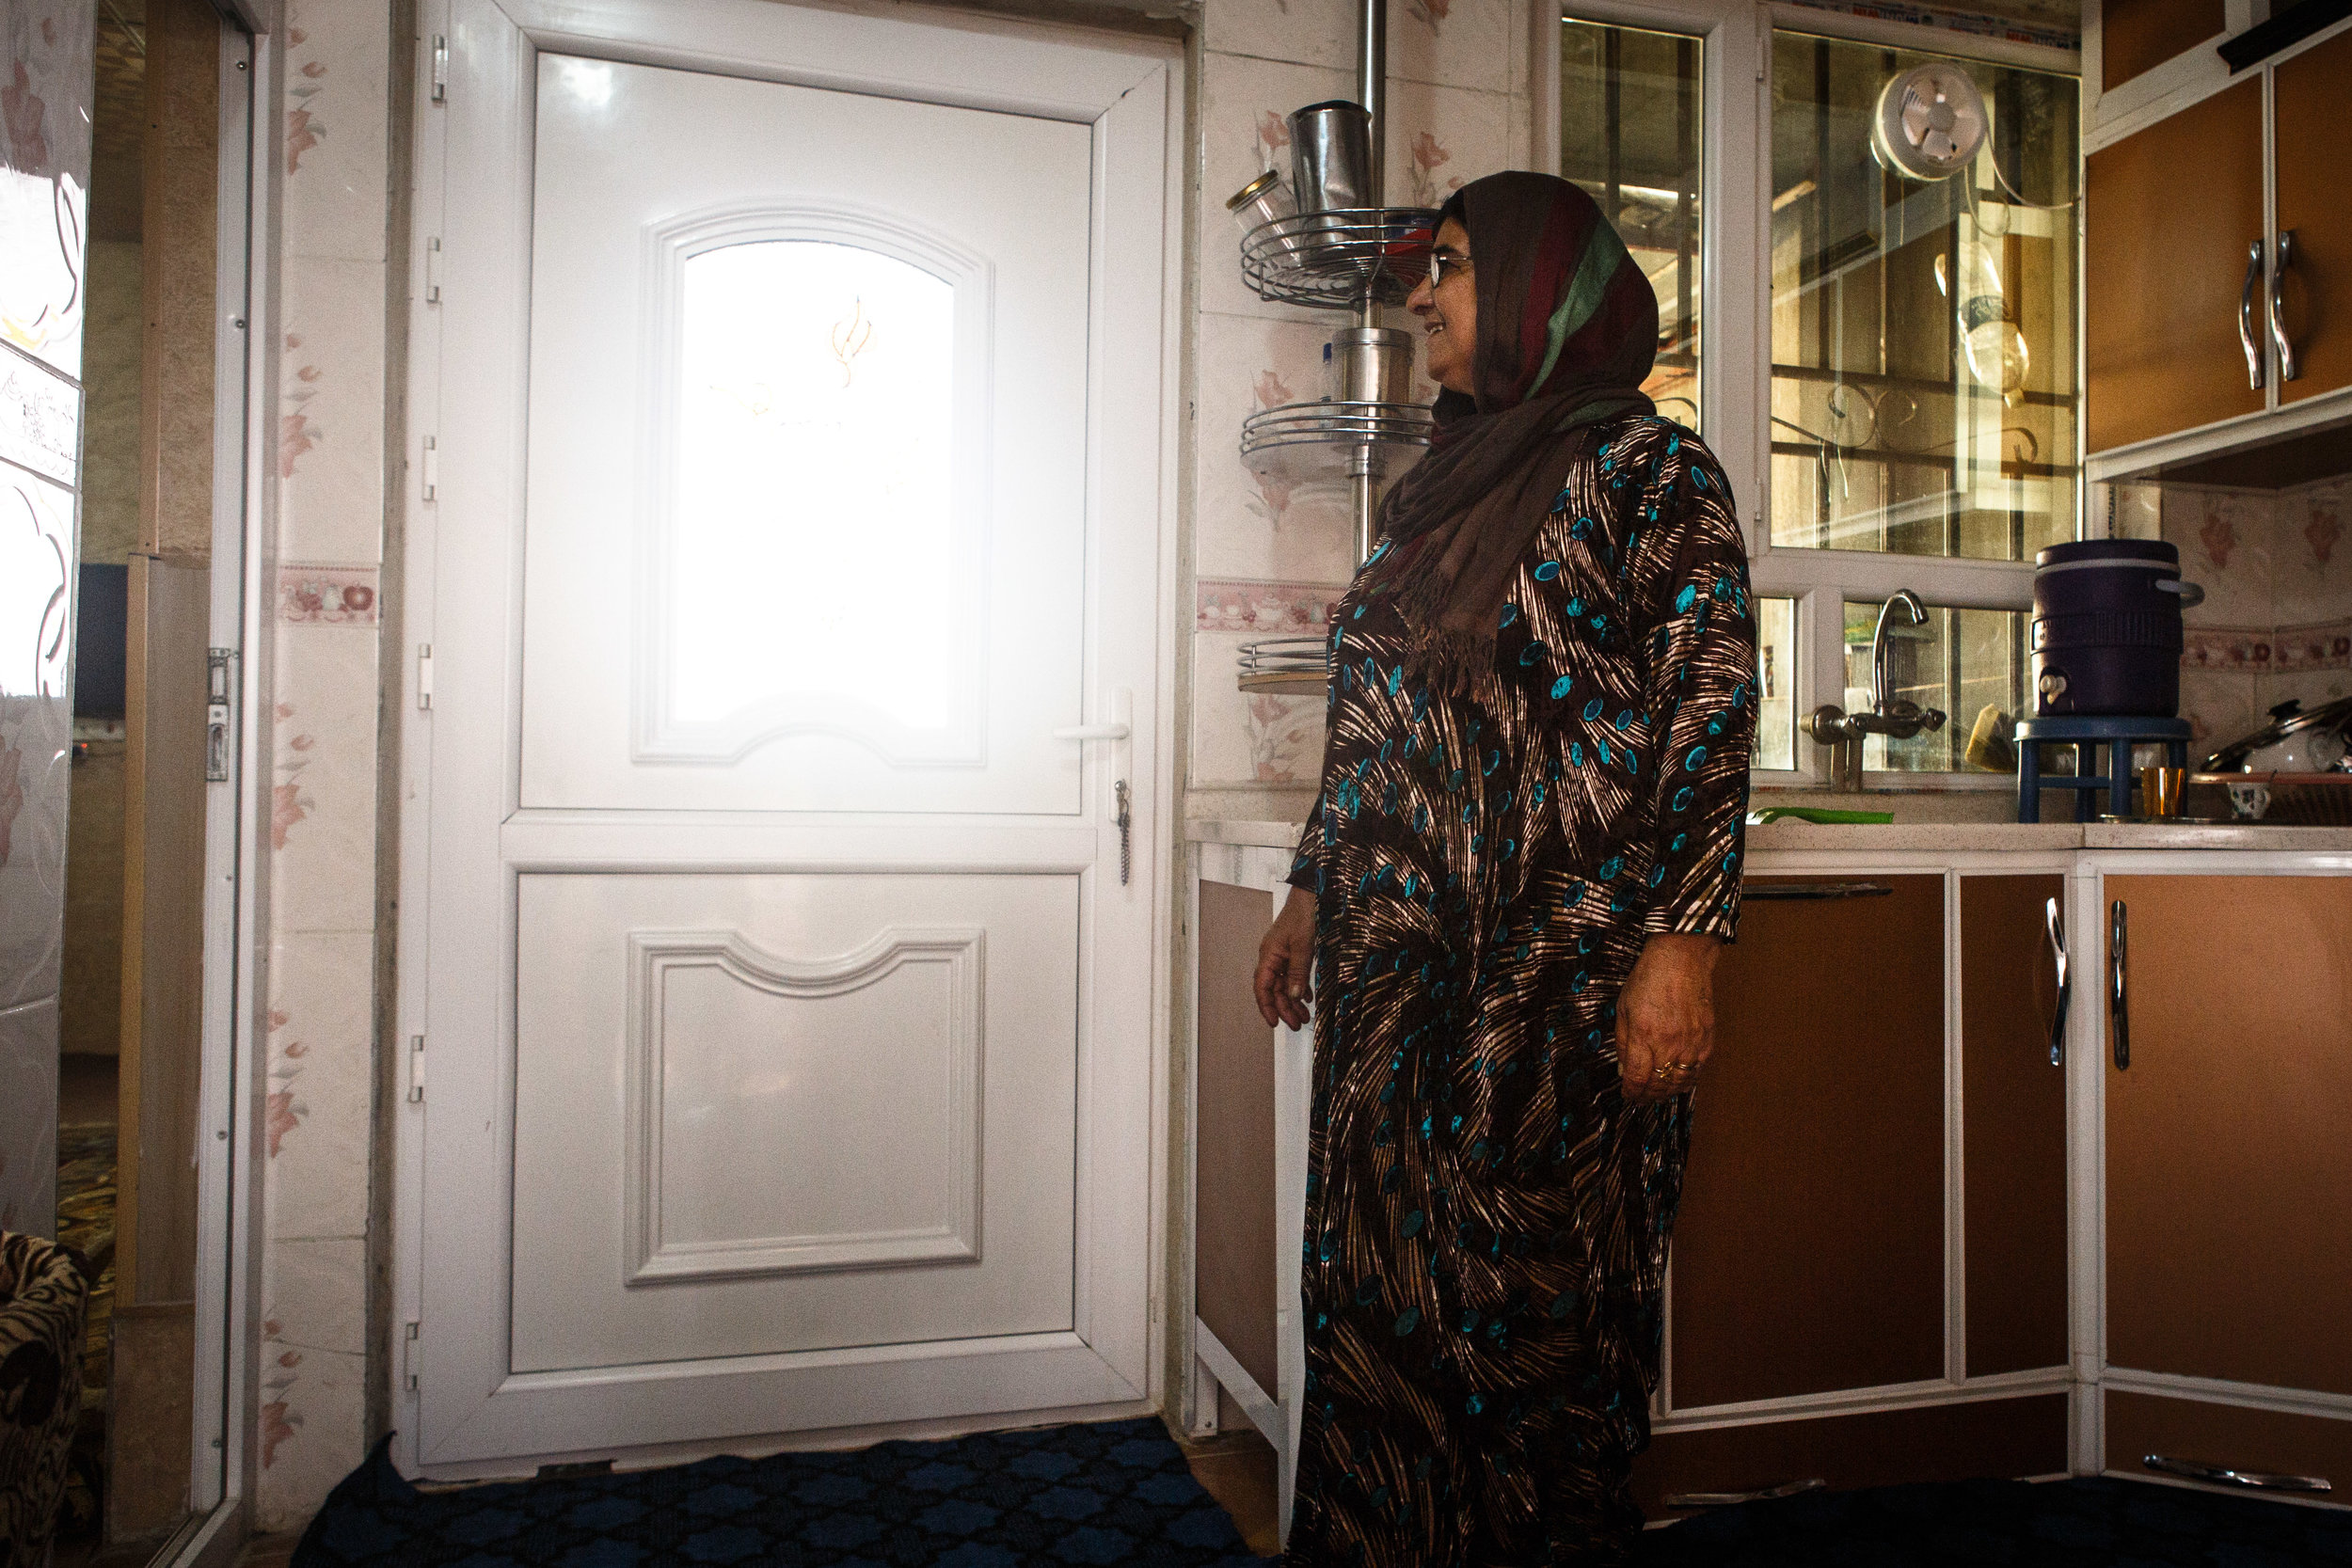 The wife of Abdul Kadr Muhammed looks out the window of the kitchen.